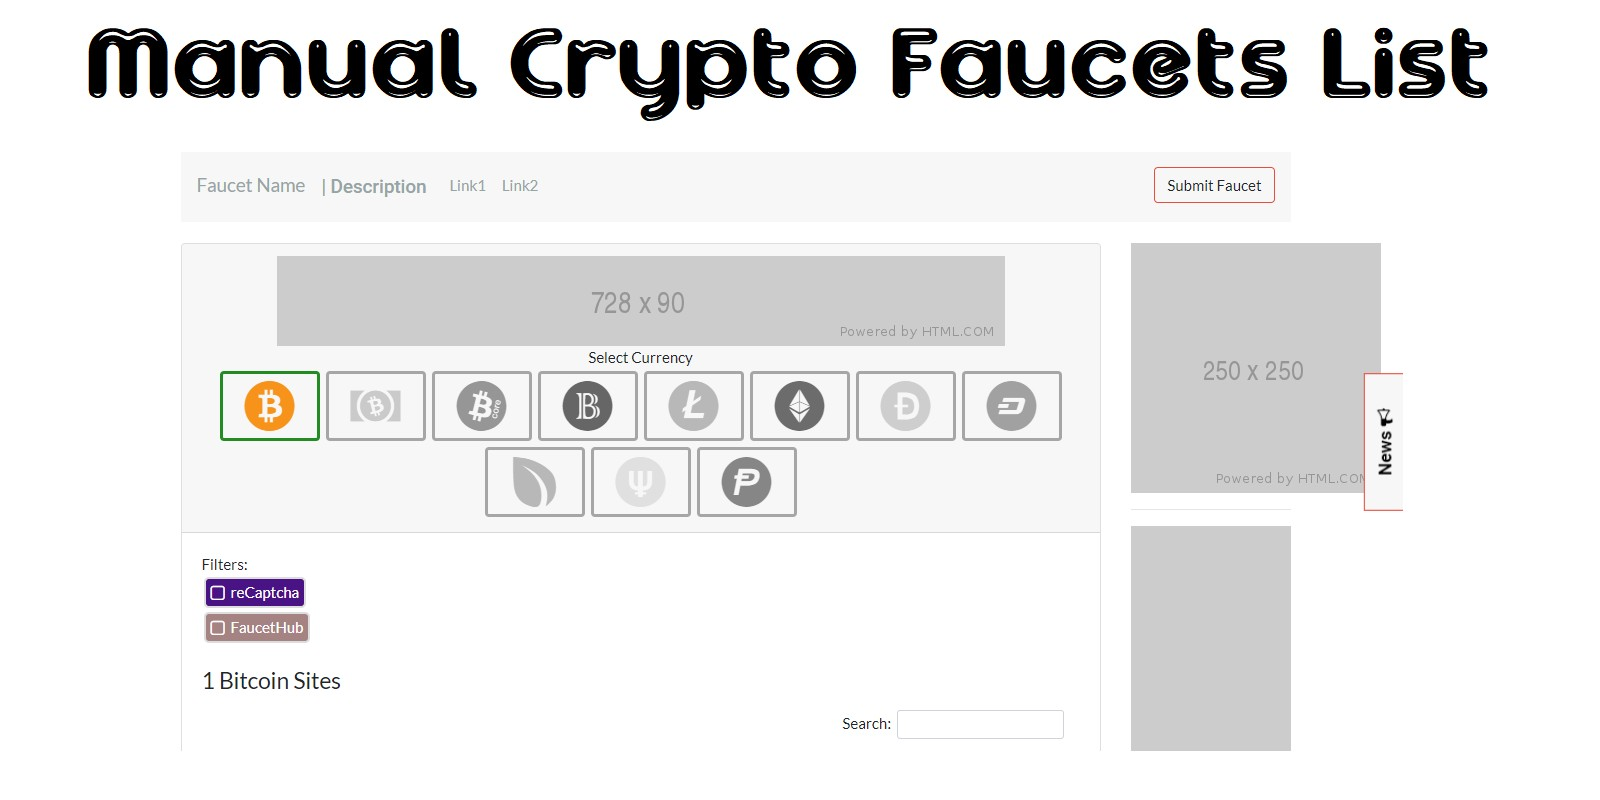 Manual Crypto Faucets List PHP Script